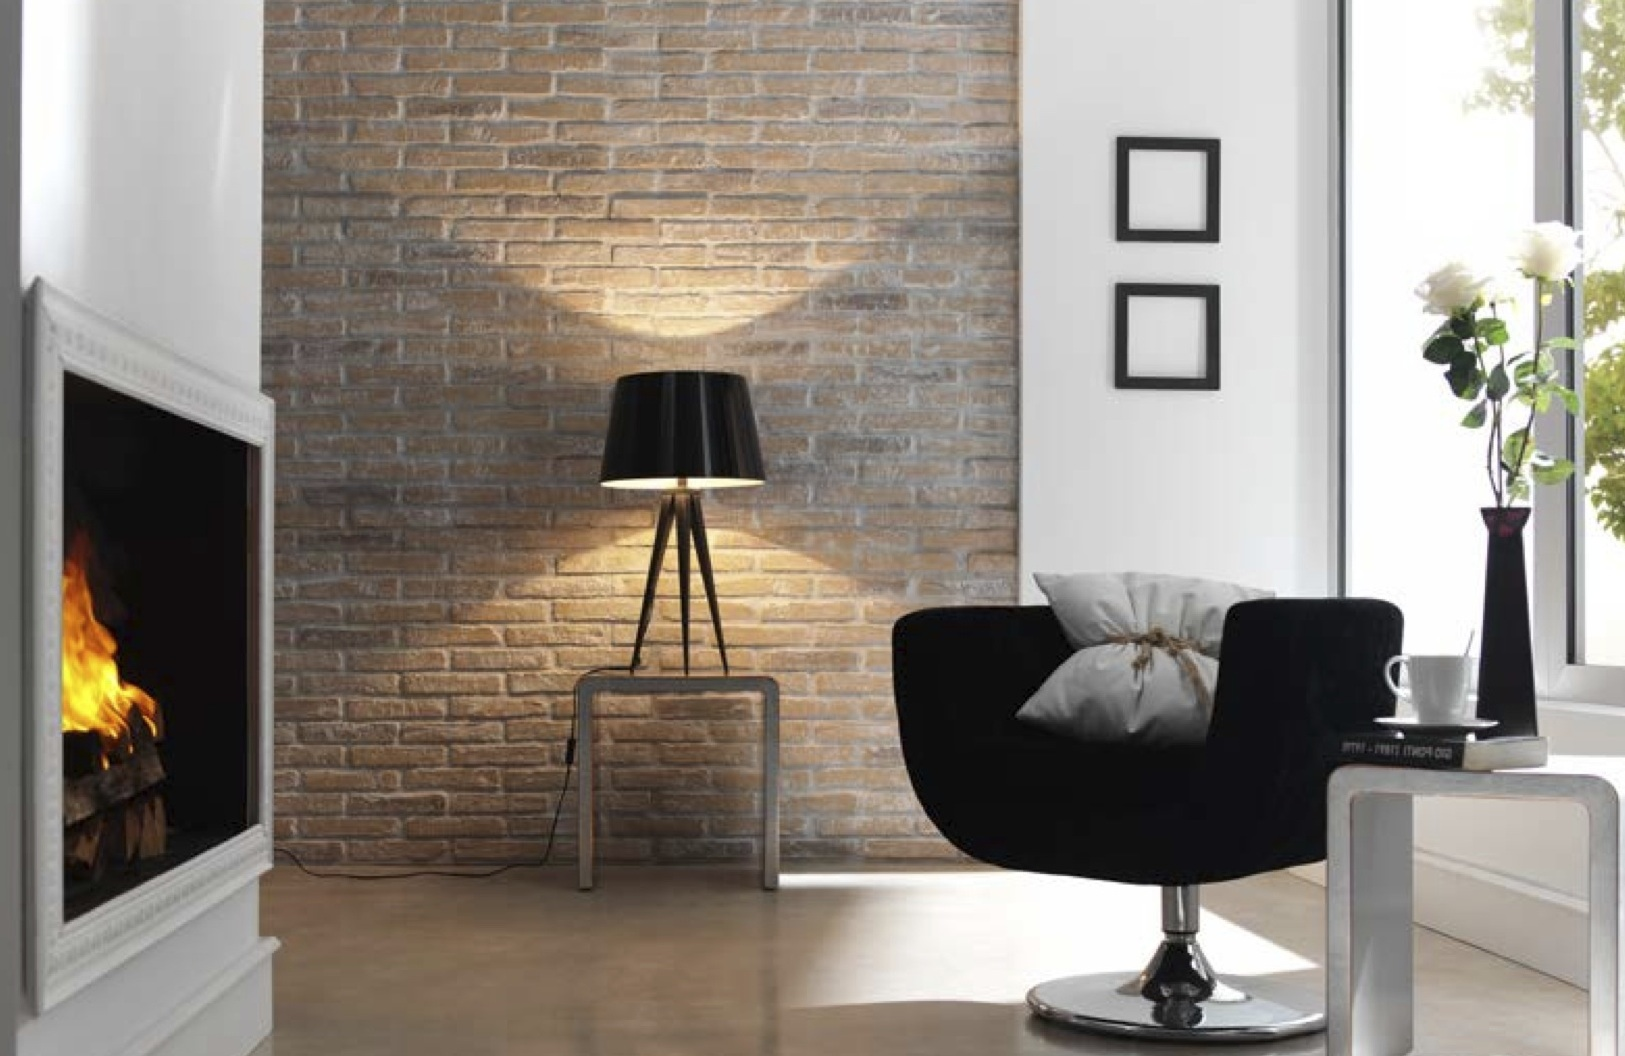 Earthy Whitewashed FAUXBRICK Rustic Brick Wall Panels